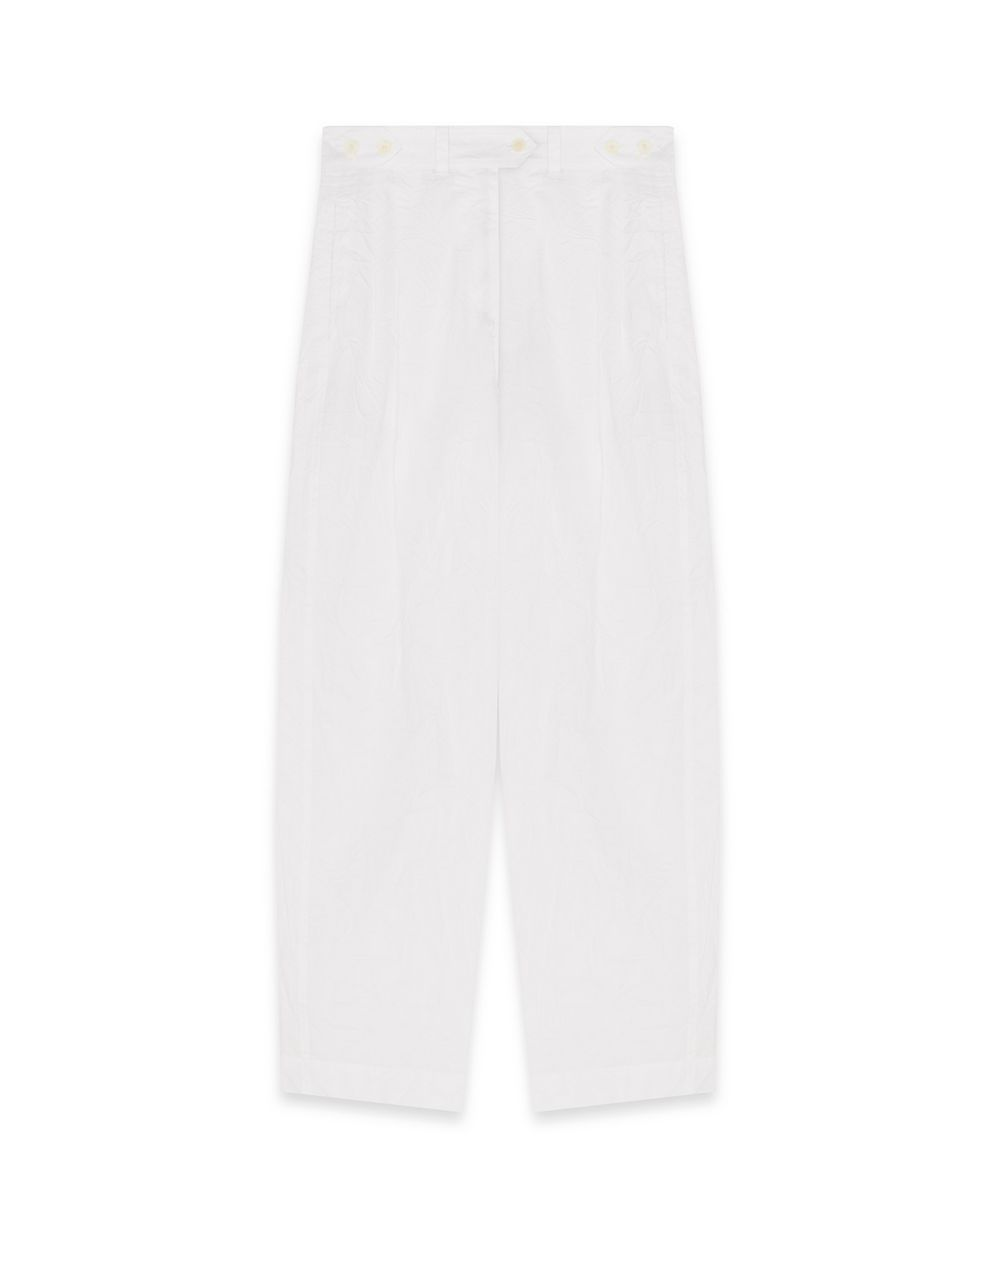 PUFFED COTTON TROUSERS - Lanvin